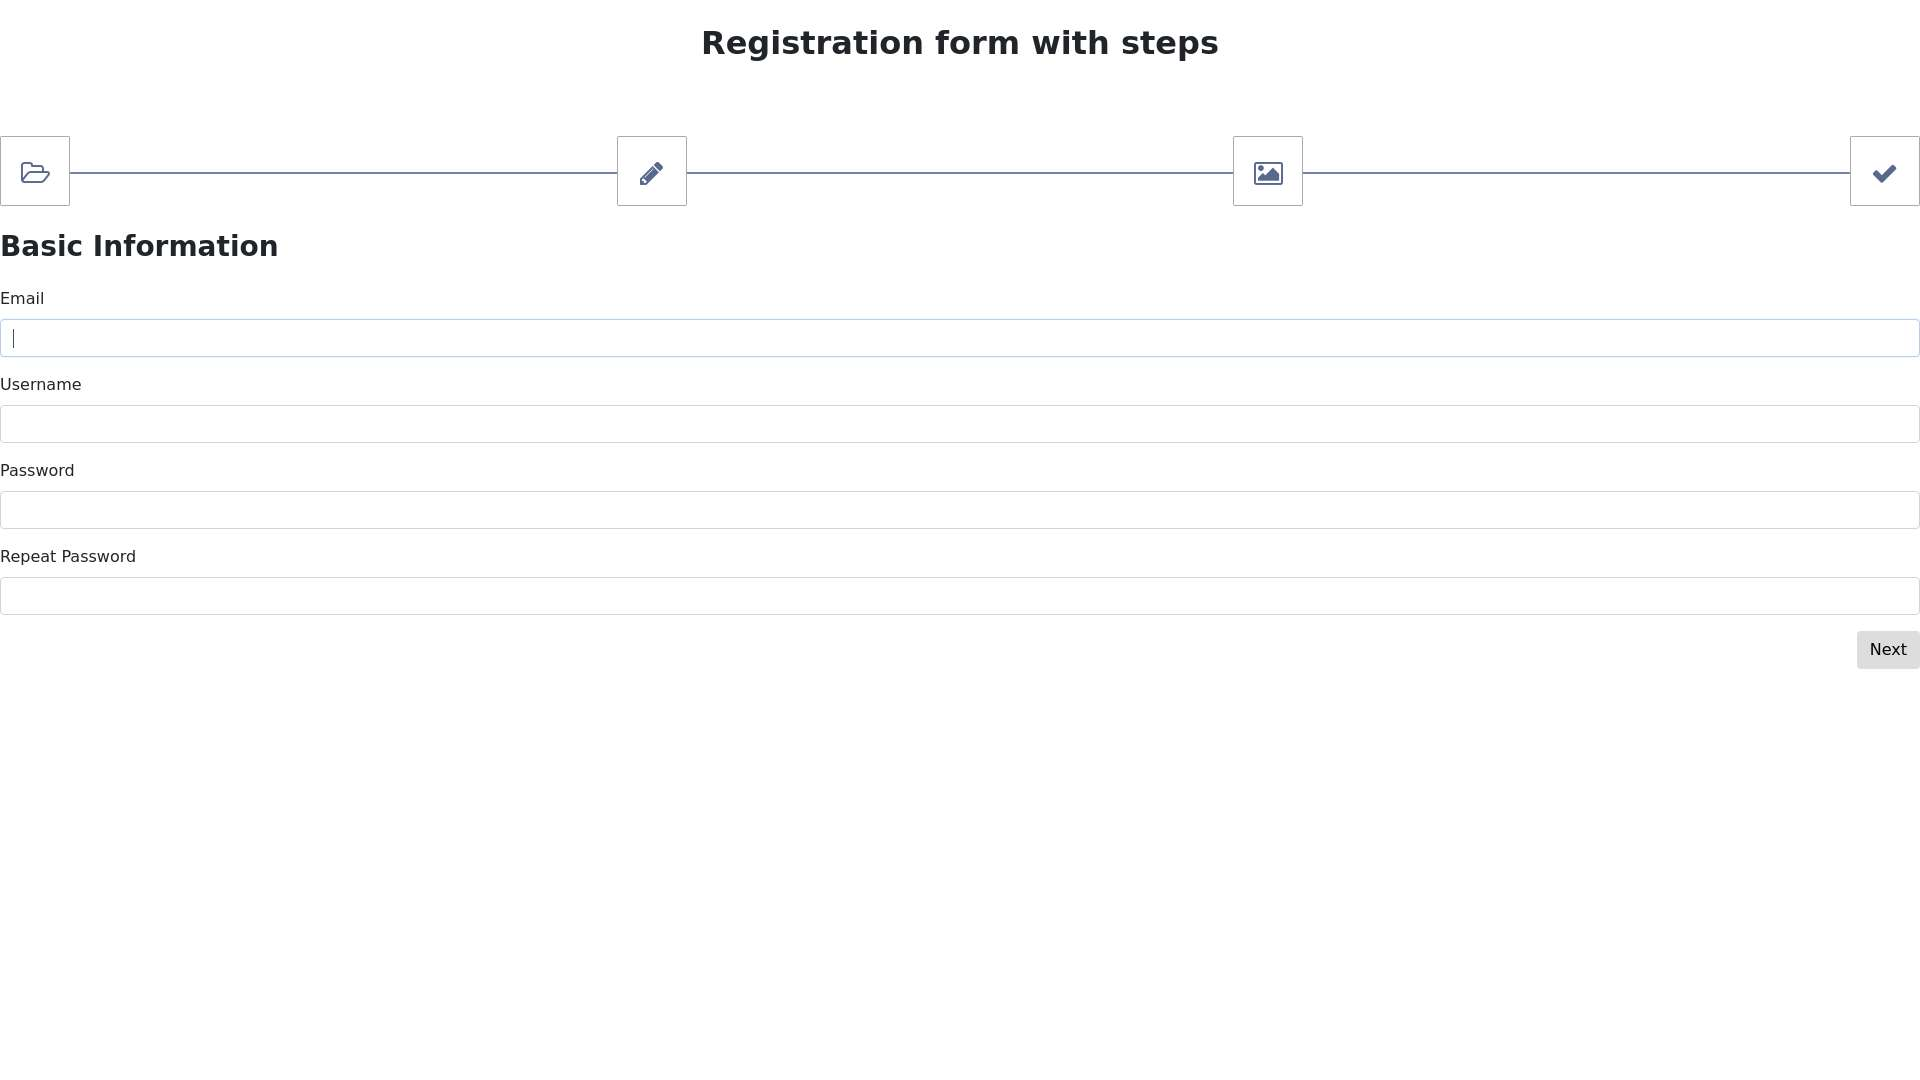 Registration form with steps